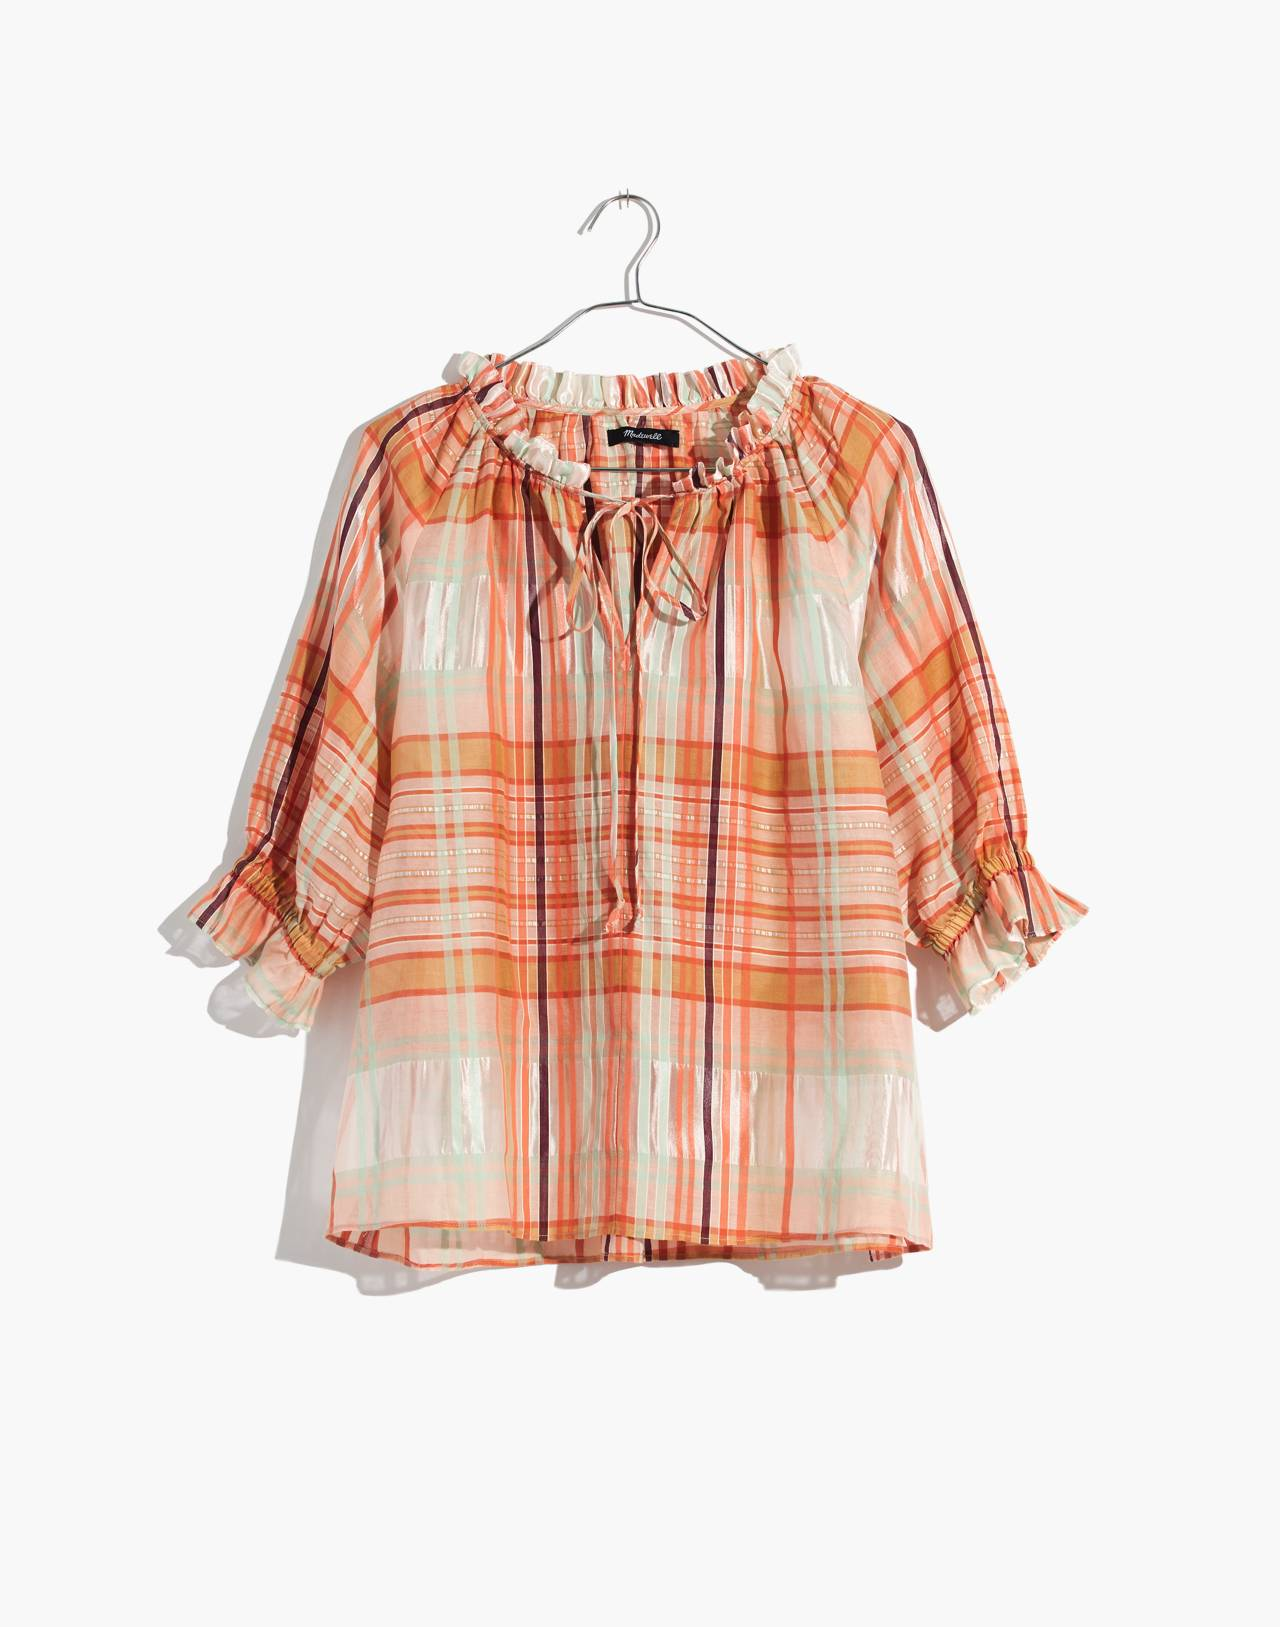 Plaid Tie-Neck Ruffle-Sleeve Top in wilton plaid bashful blush image 4